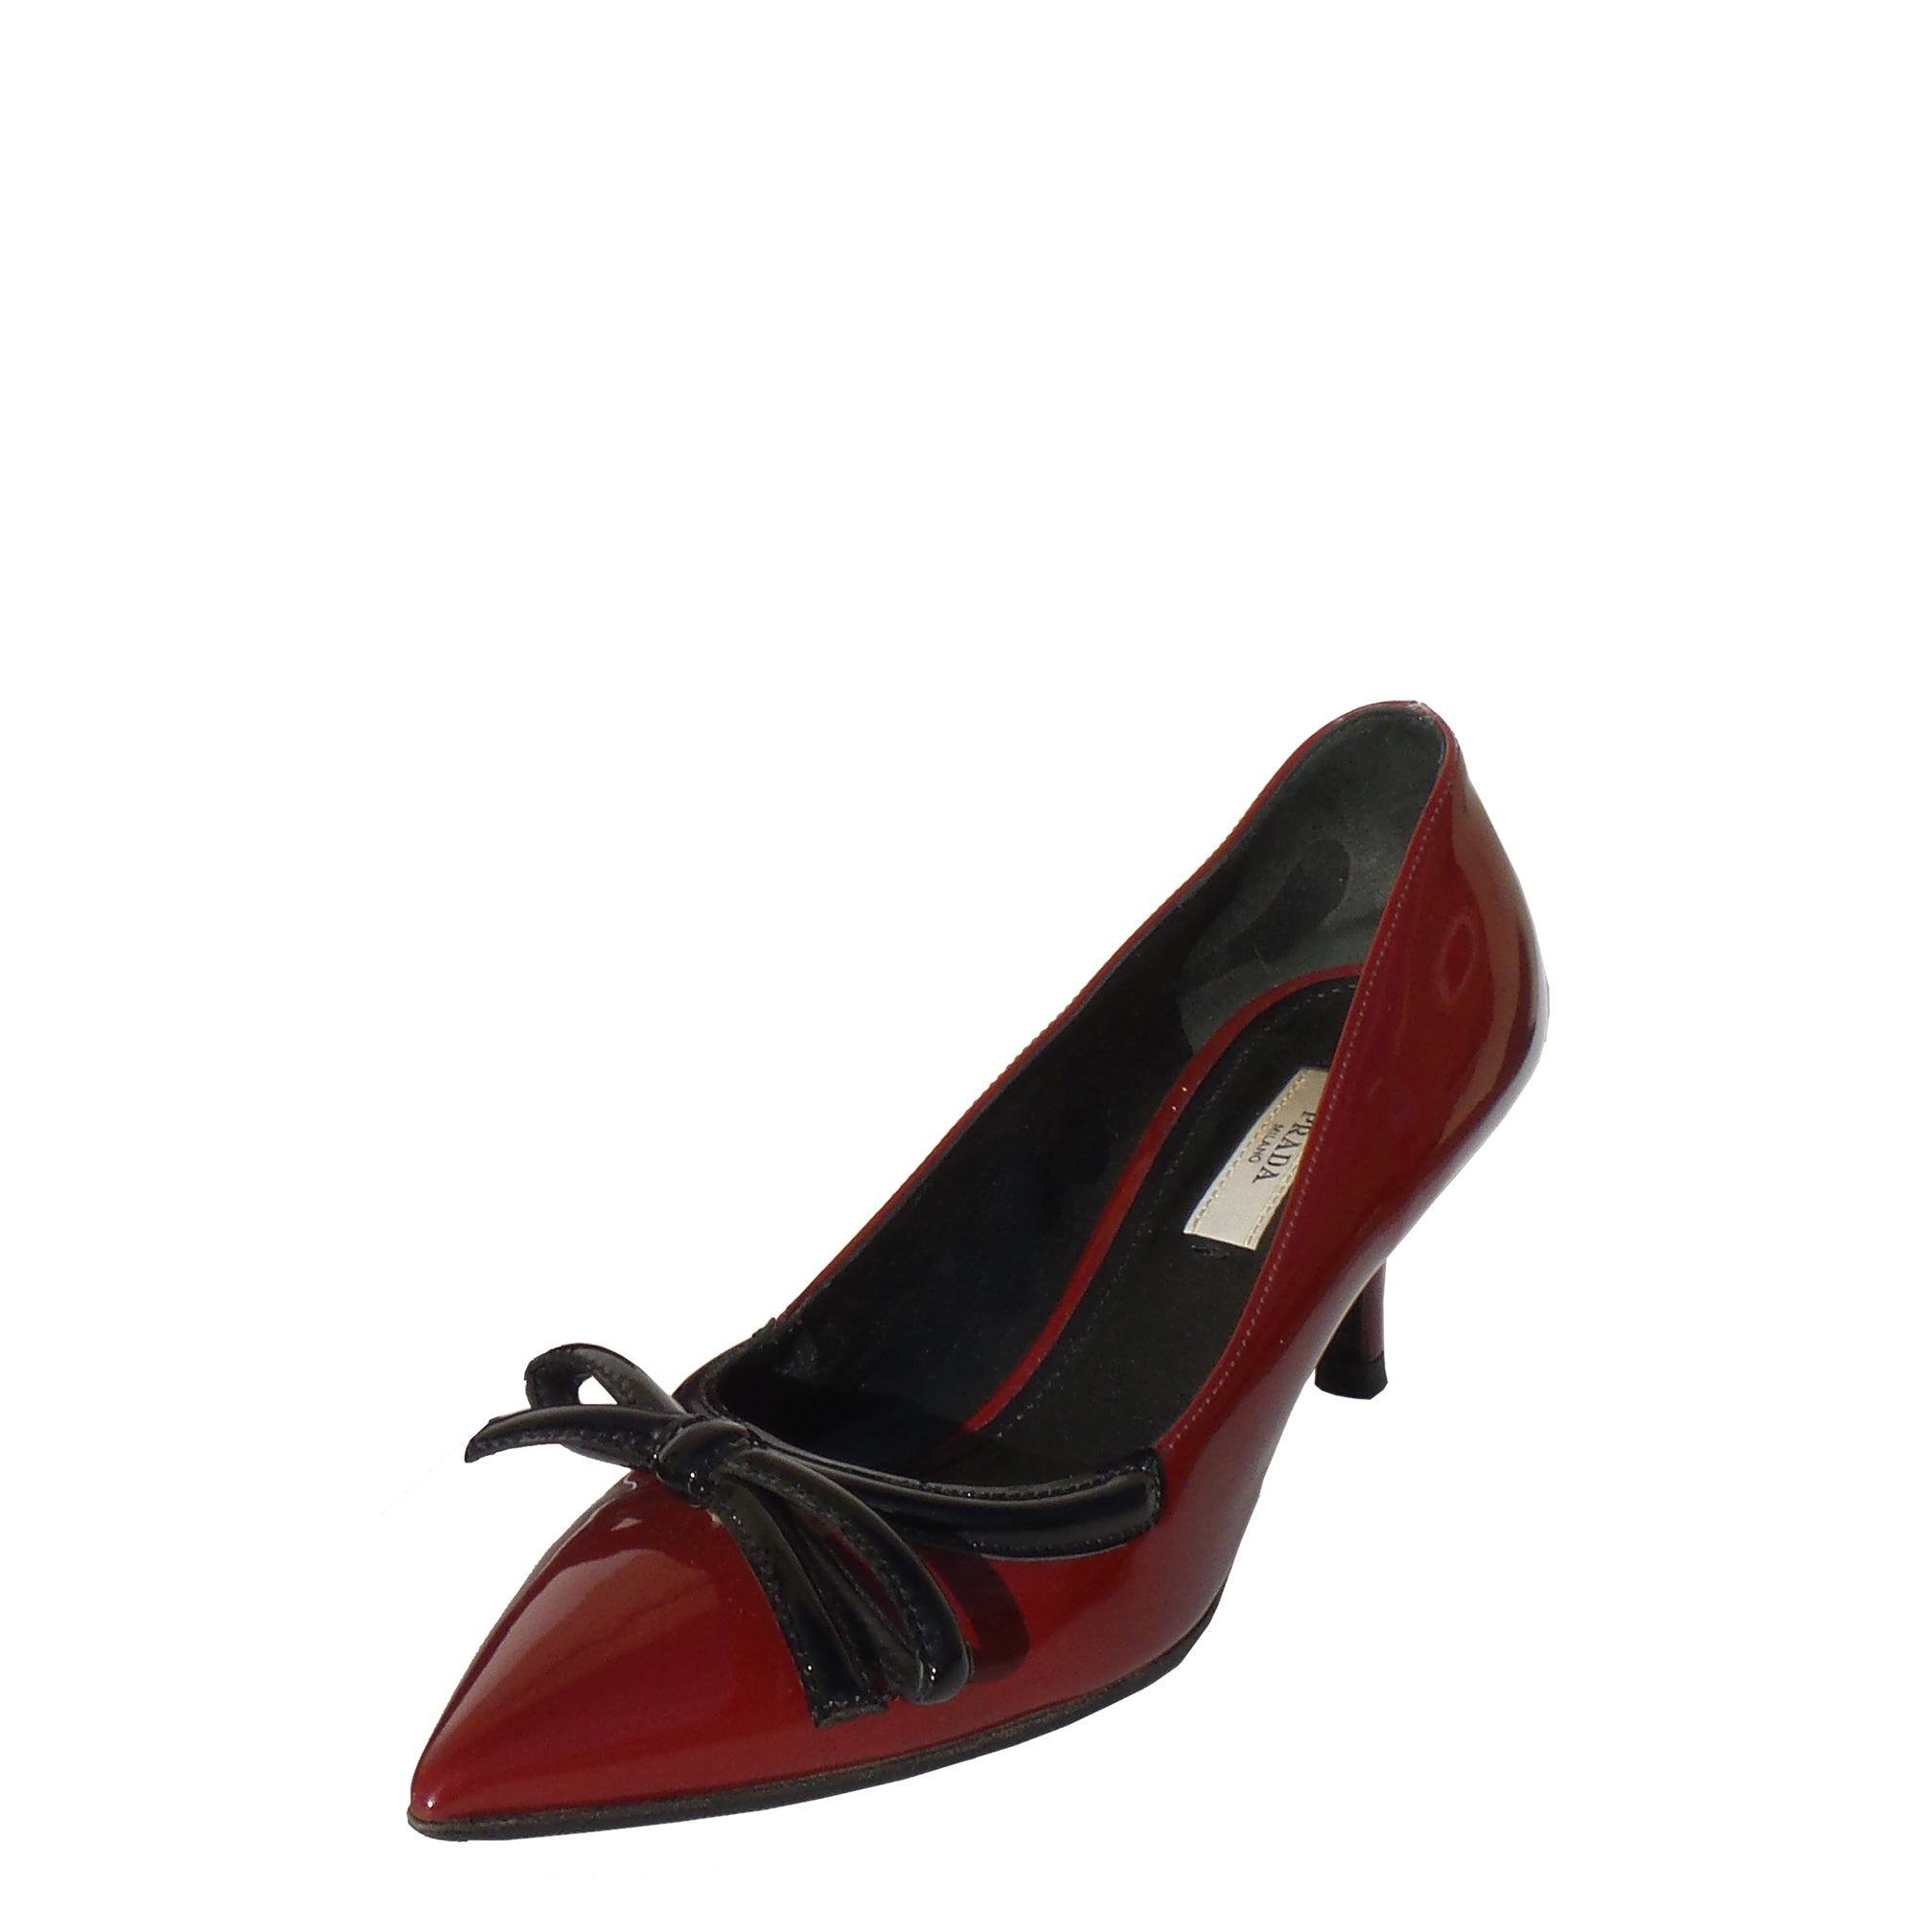 PRADA Burgundy Red Patent Leather Black Bow Pointed Toe Kitten Heel Pu –  Encore Resale.com